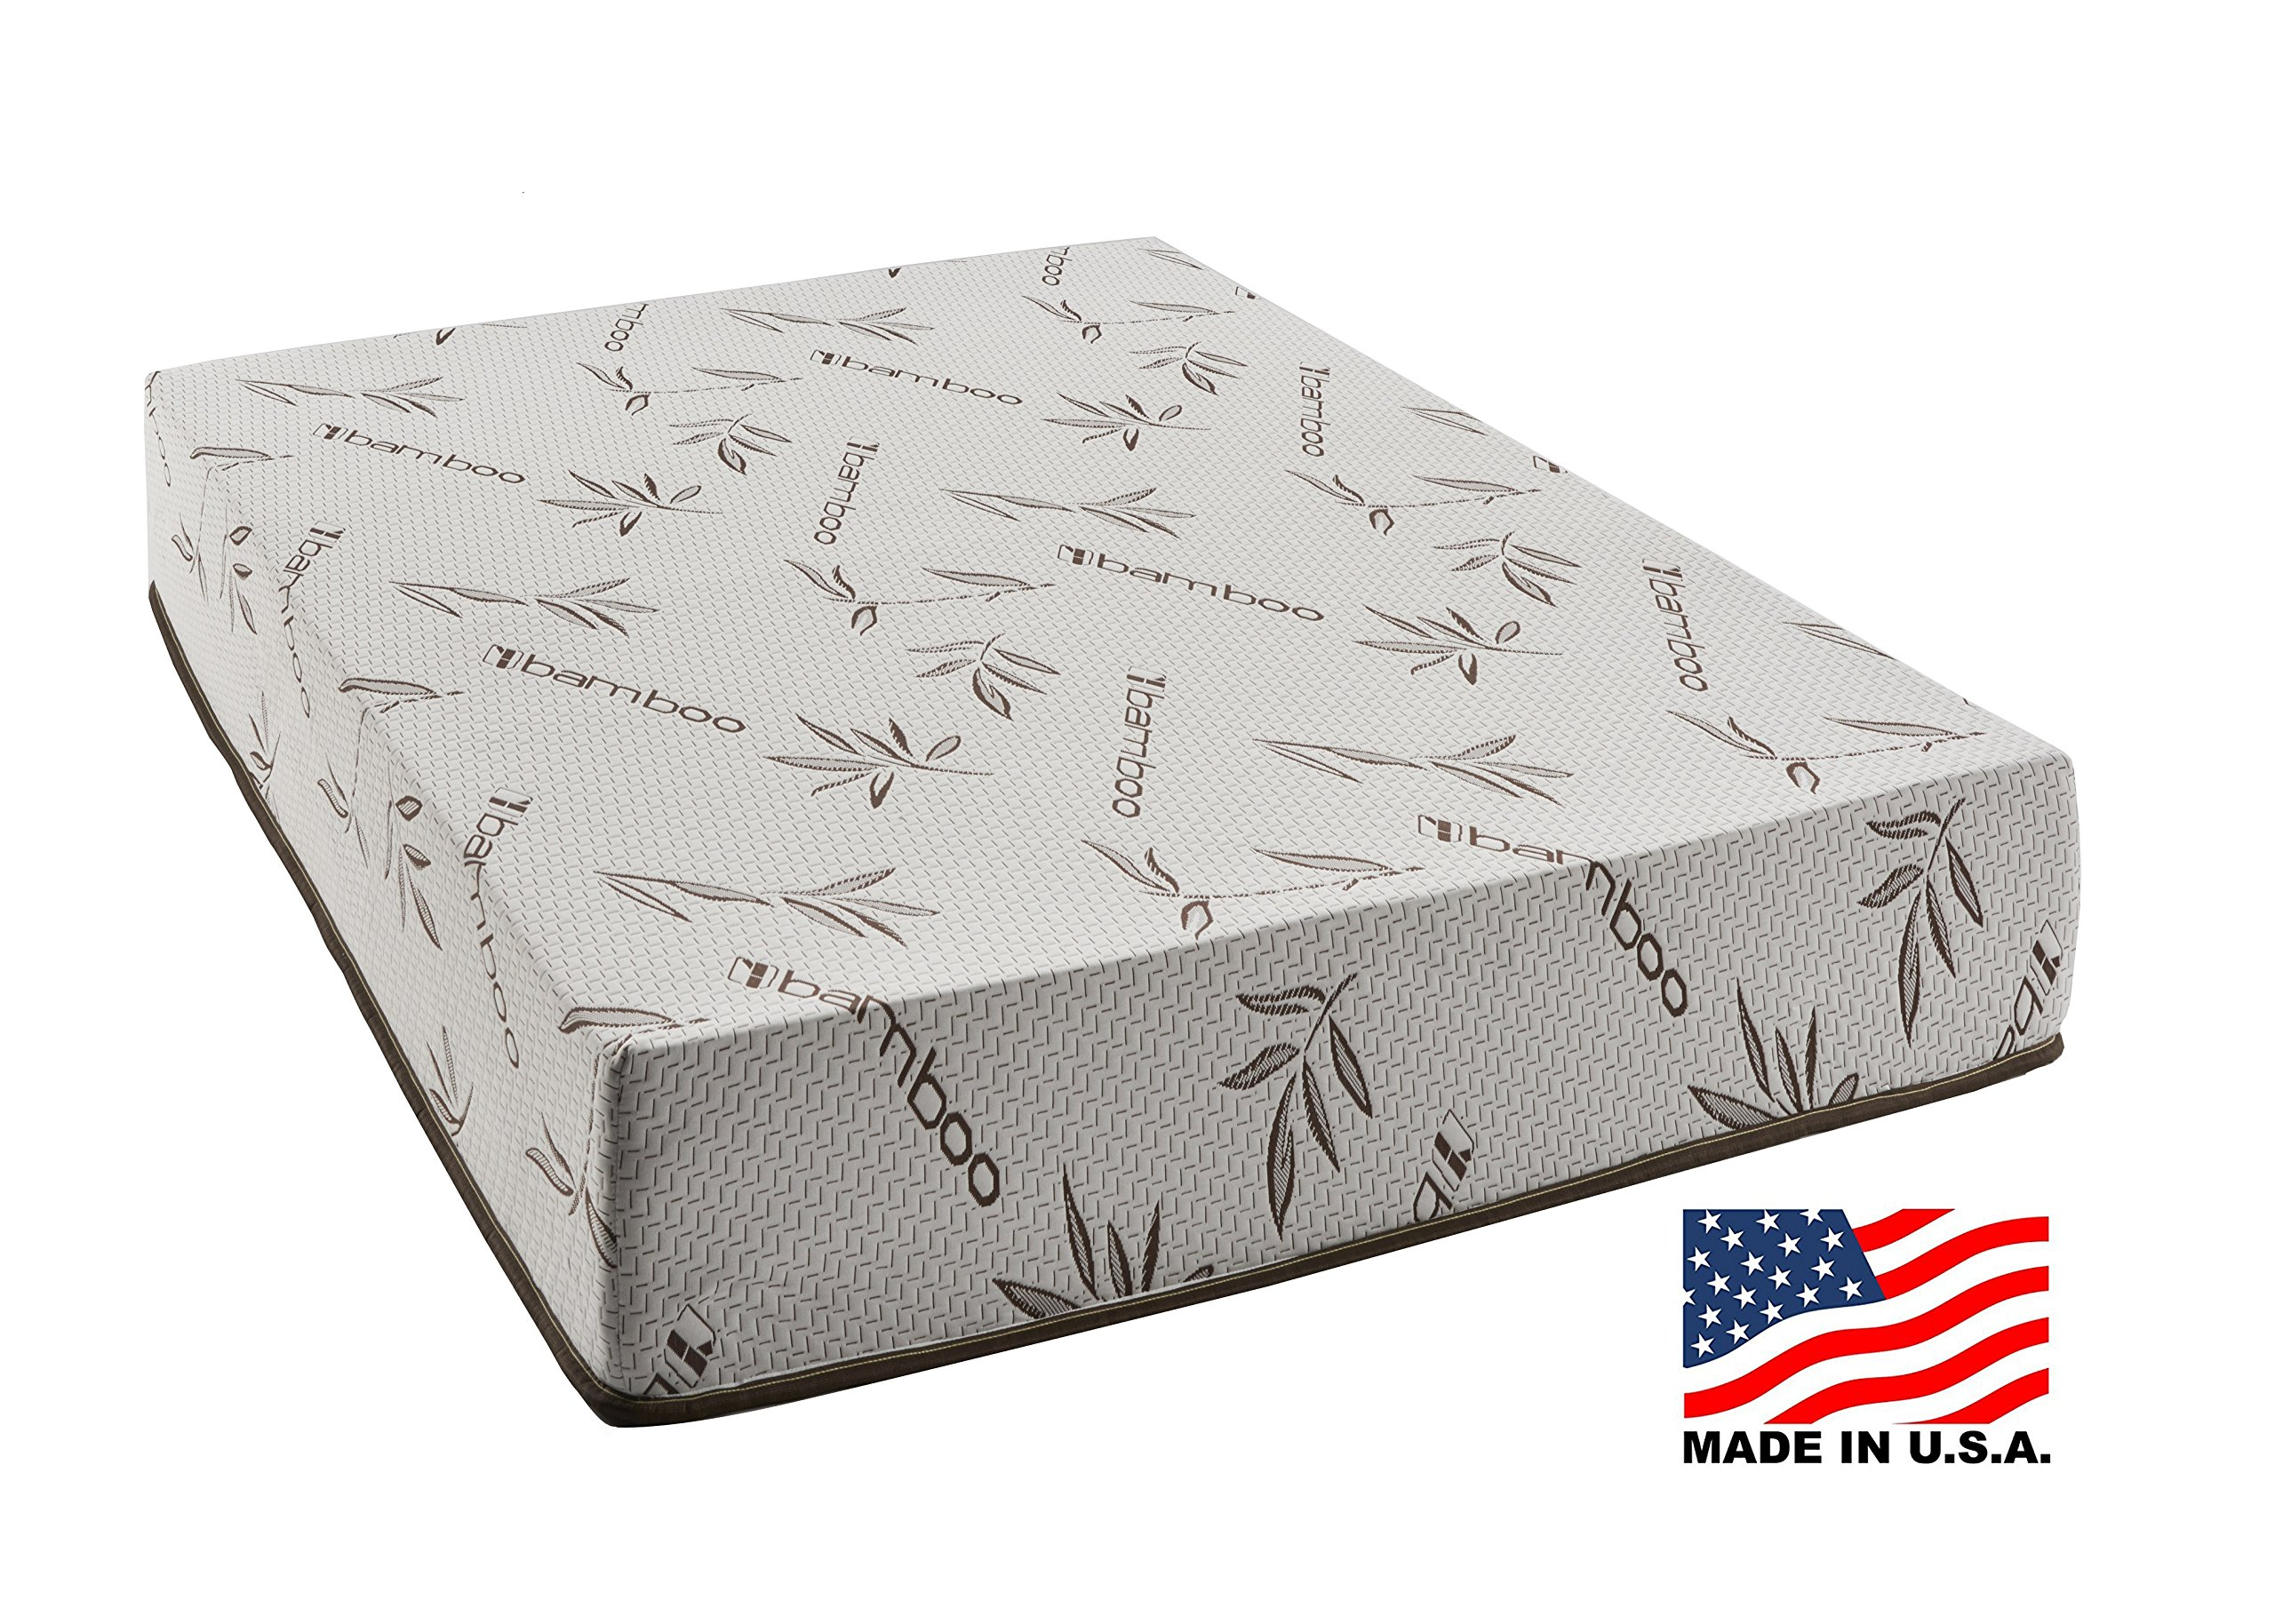 Customize Bed 10 Inch Gel Memory Foam Mattress with Bamboo Cover, Cot size 33x74 for RV, Cot, Folding, Guest & Day Bed-- CertiPUR-US Certified